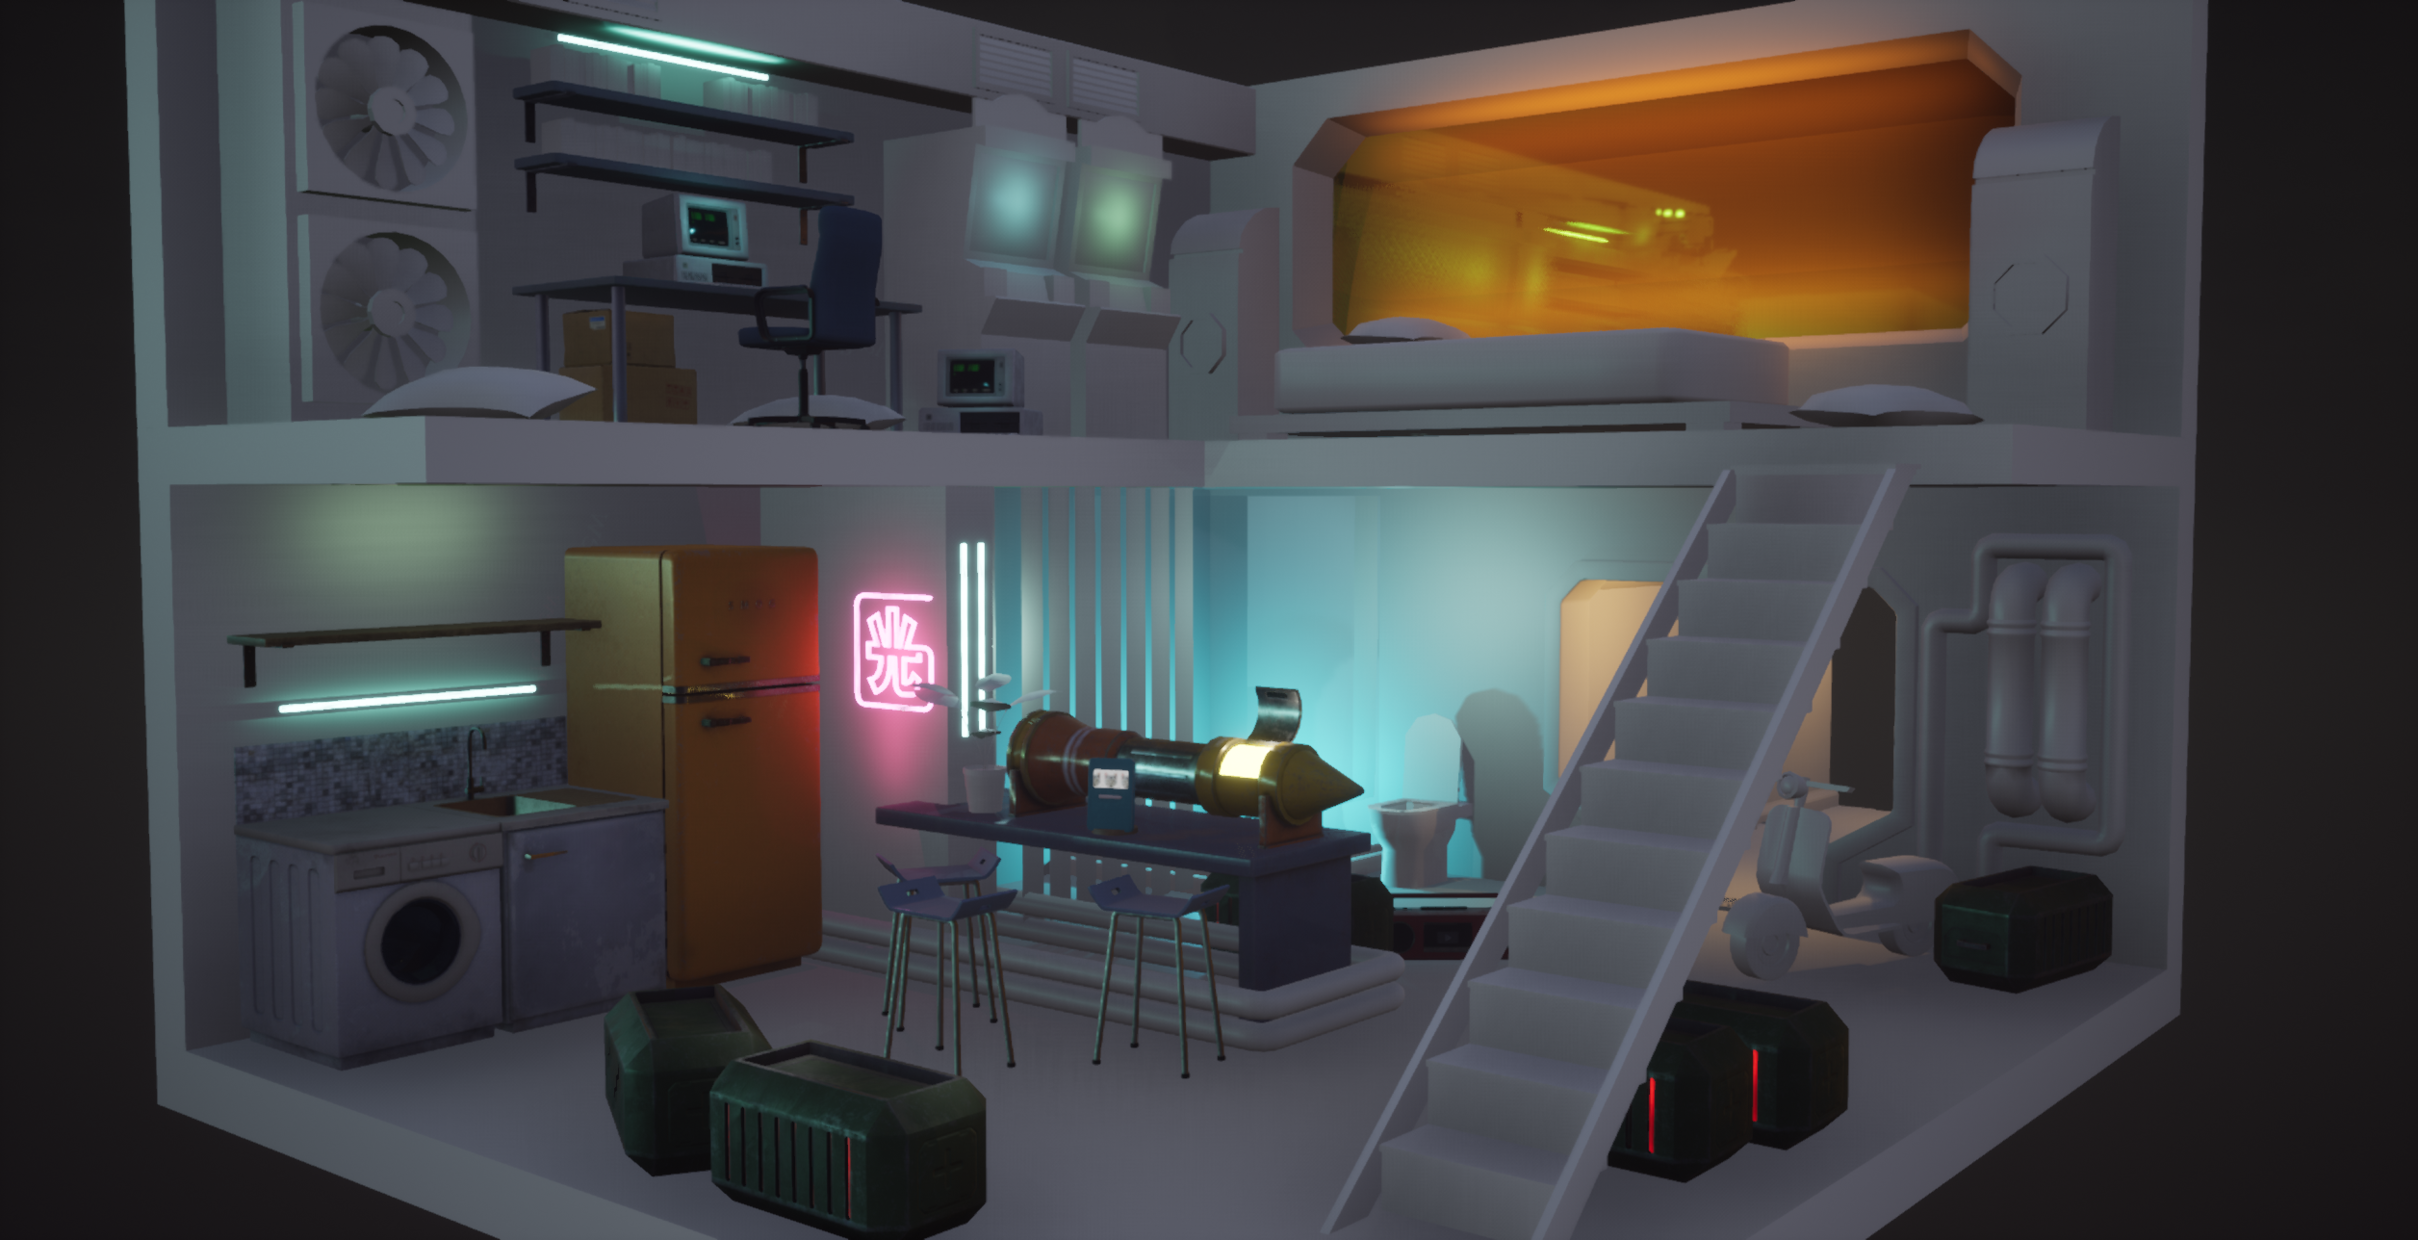 Wip Ue4 Cyberpunk Room Polycount Futuristic Interior Small House Interior Design Punk Room